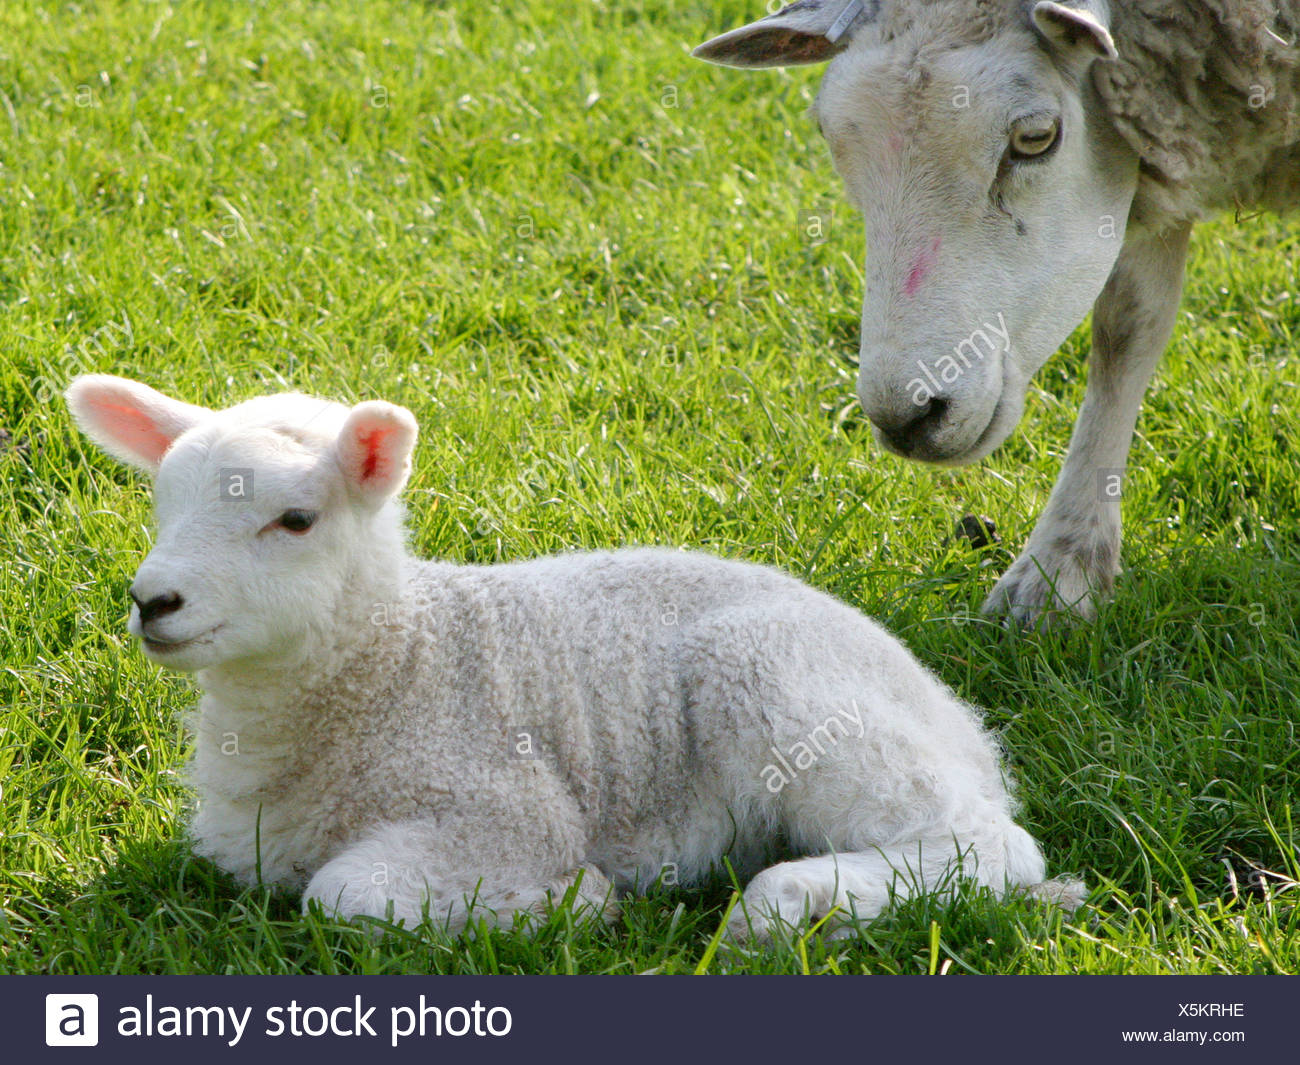 A lamb and its mother. - Stock Image